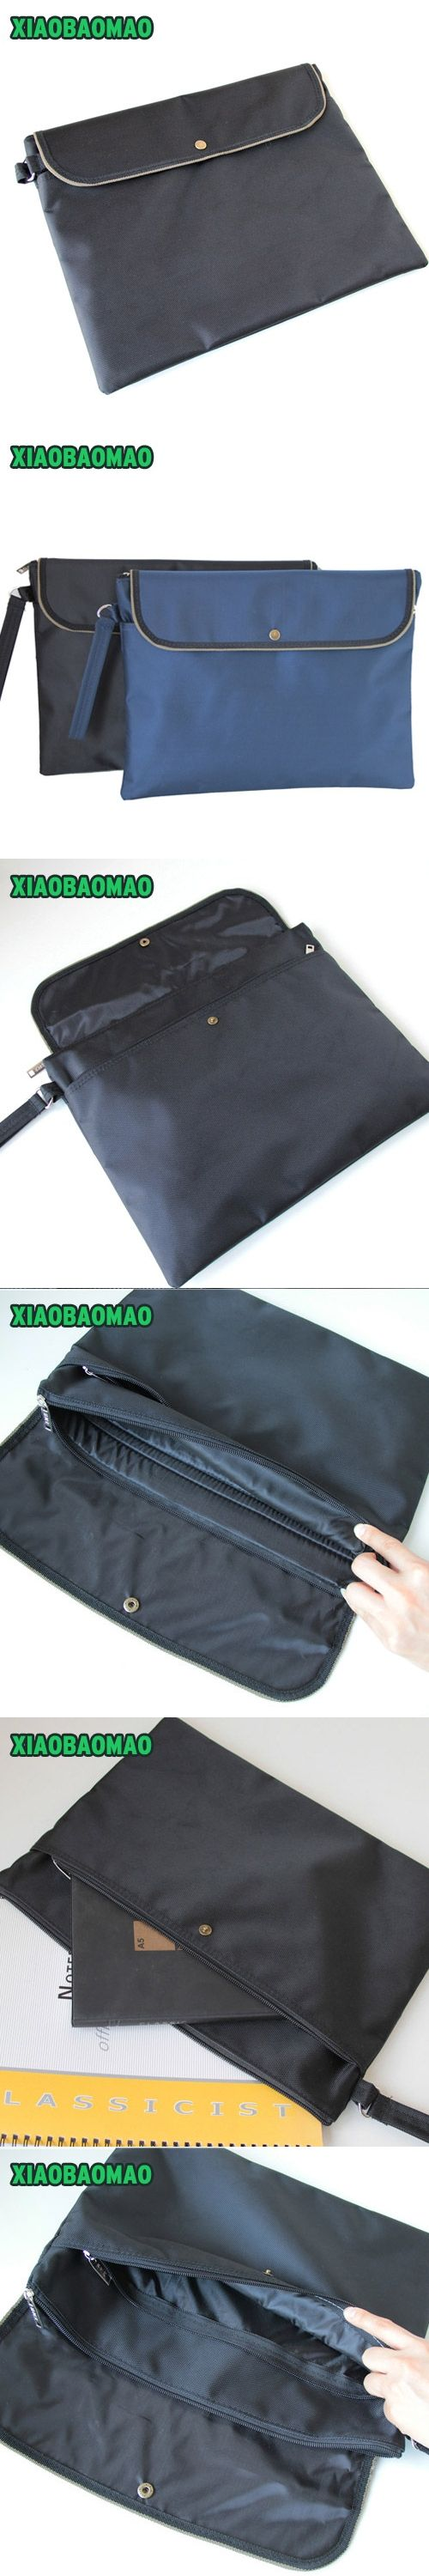 A4 Document bag simple Business office bill / note / file folder / bag / pouch with Snap button Cell phone pocket flat briefcase